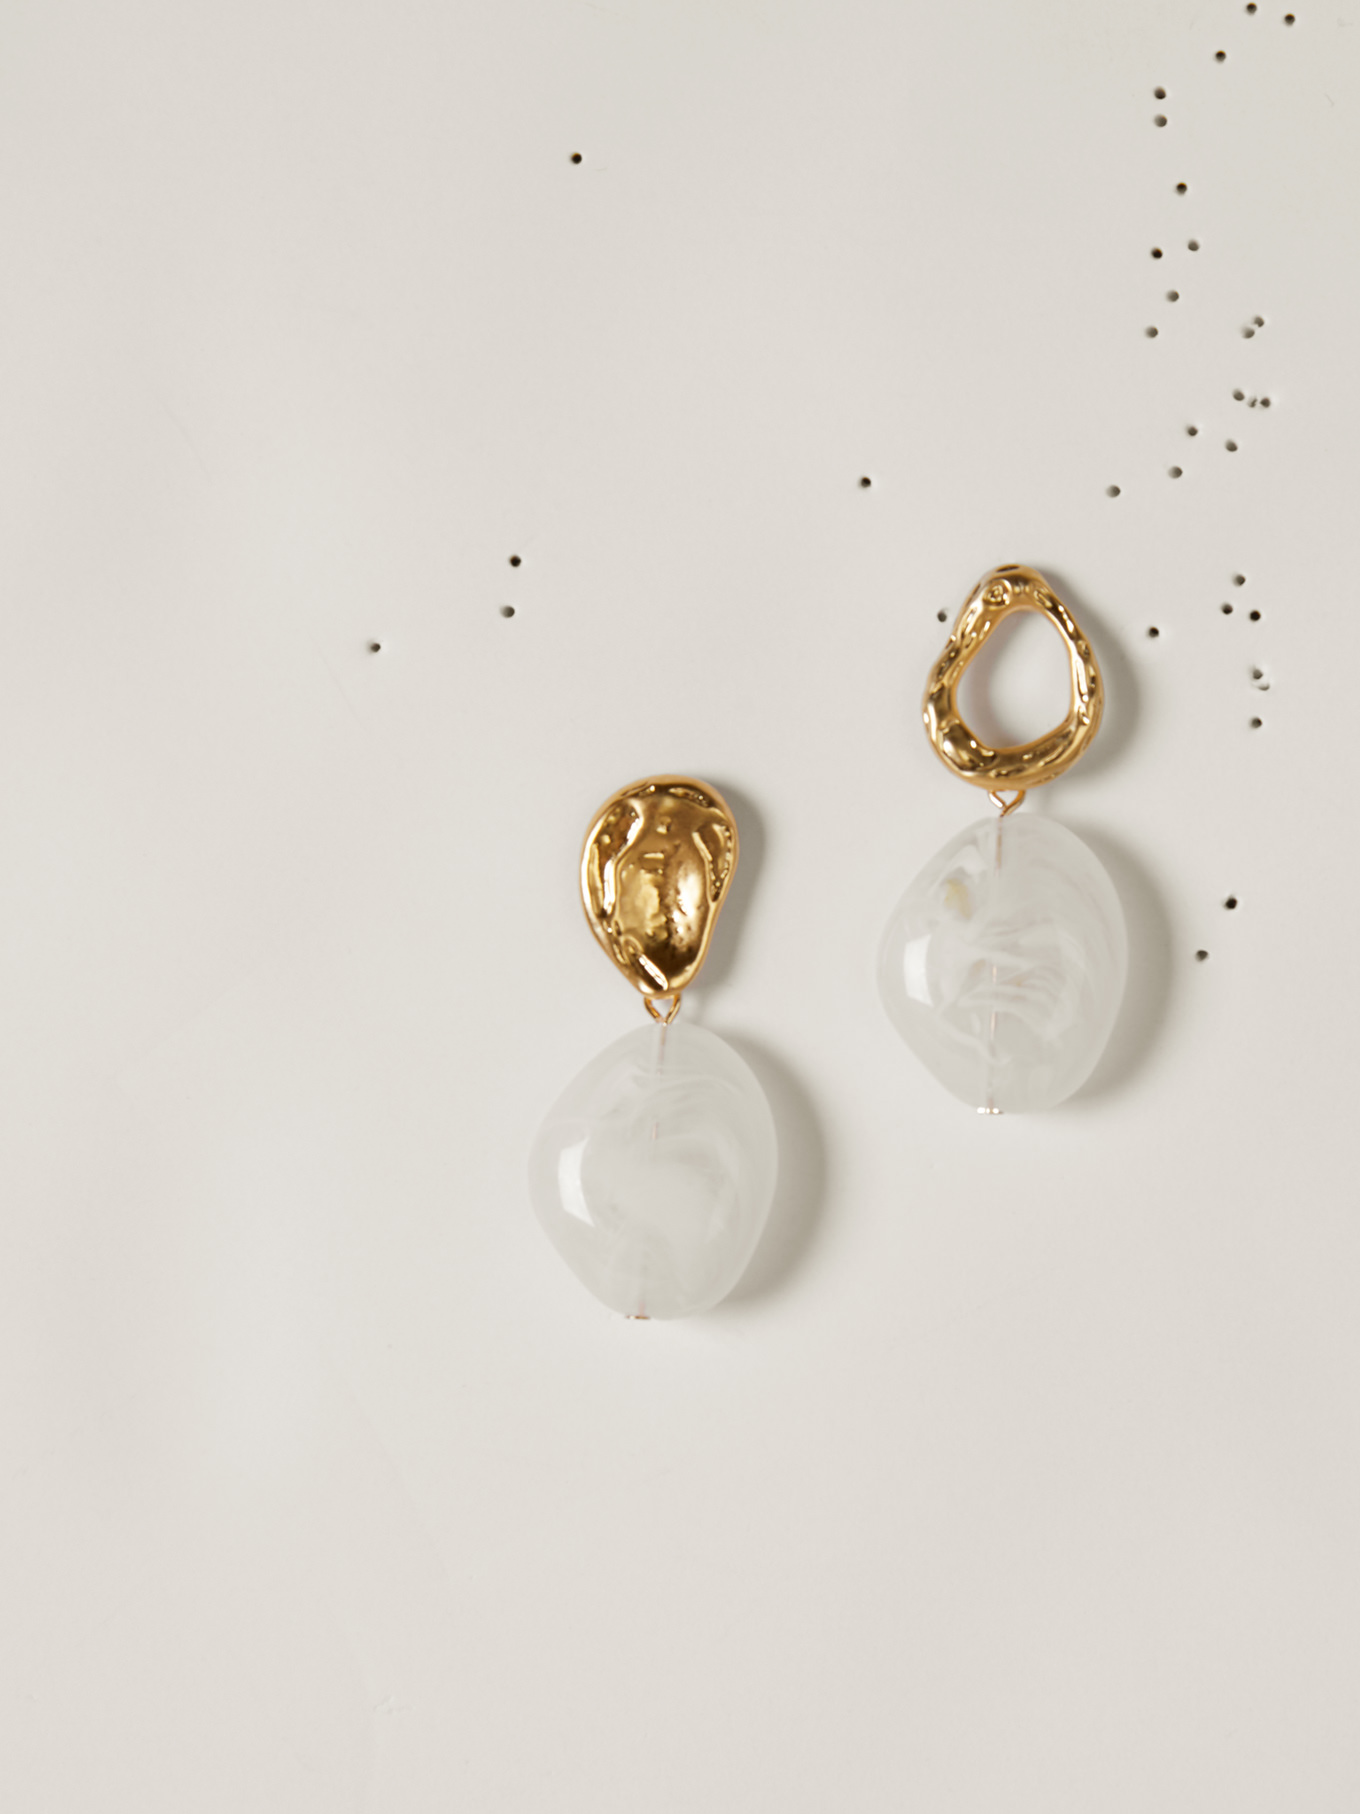 Women's jewelry fall winter clothing and accessories